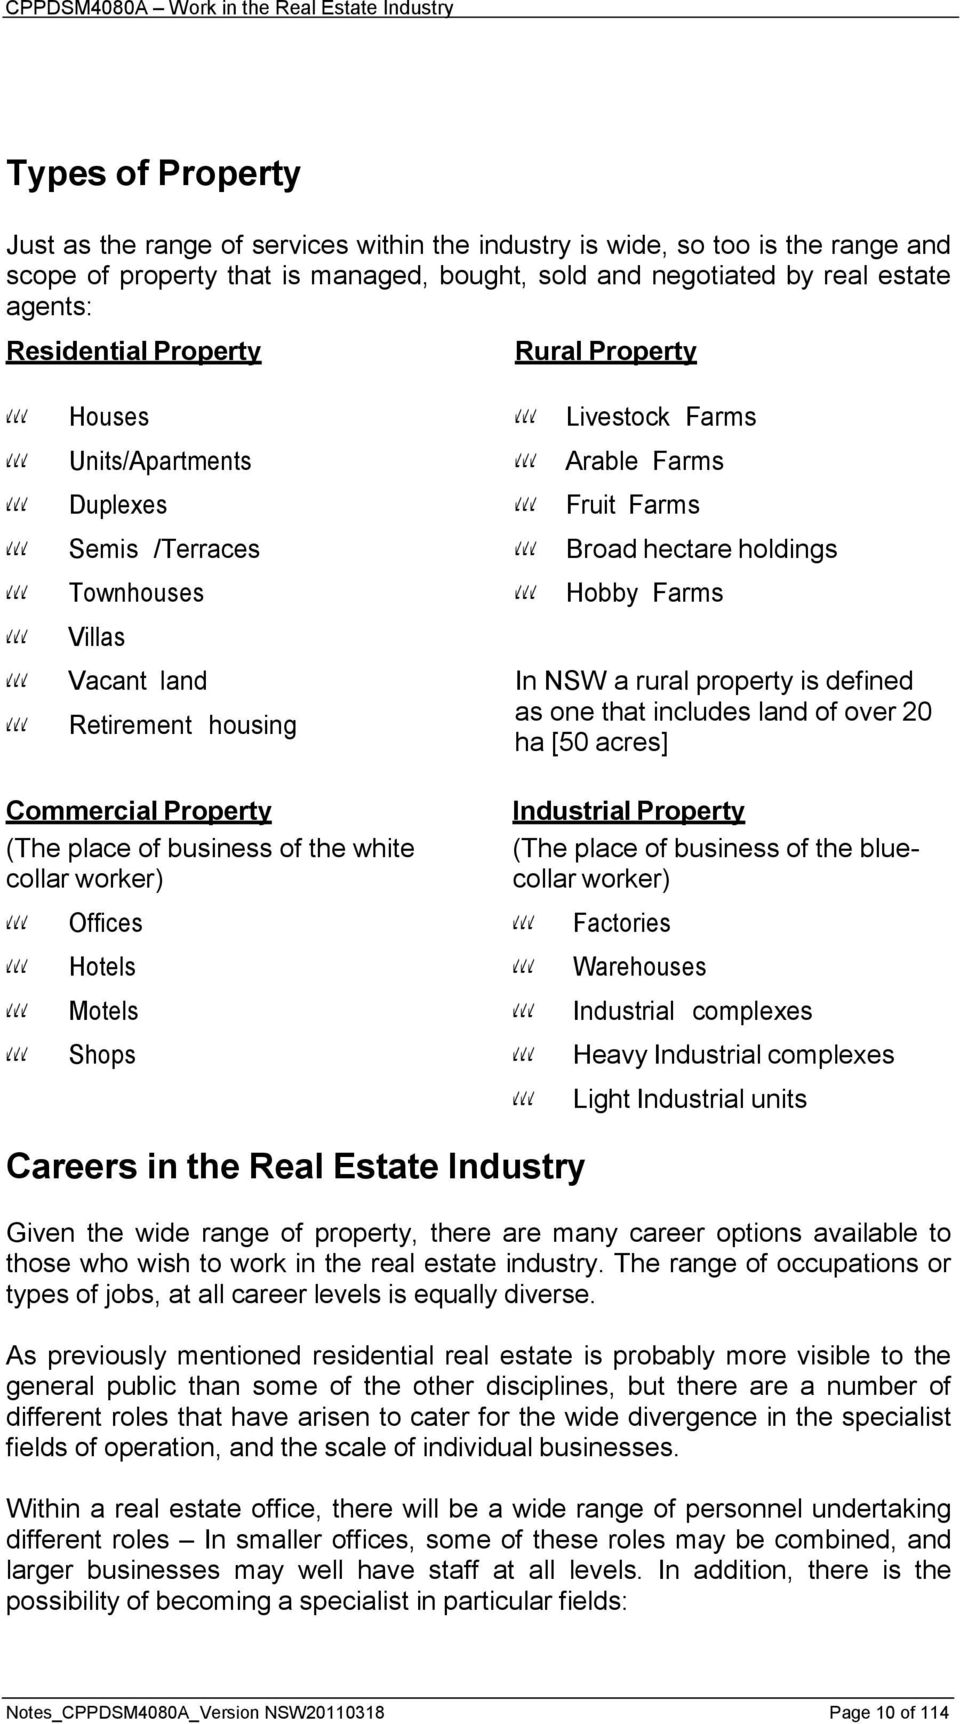 Cppdsm4080a Work In The Real Estate Industry Pdf